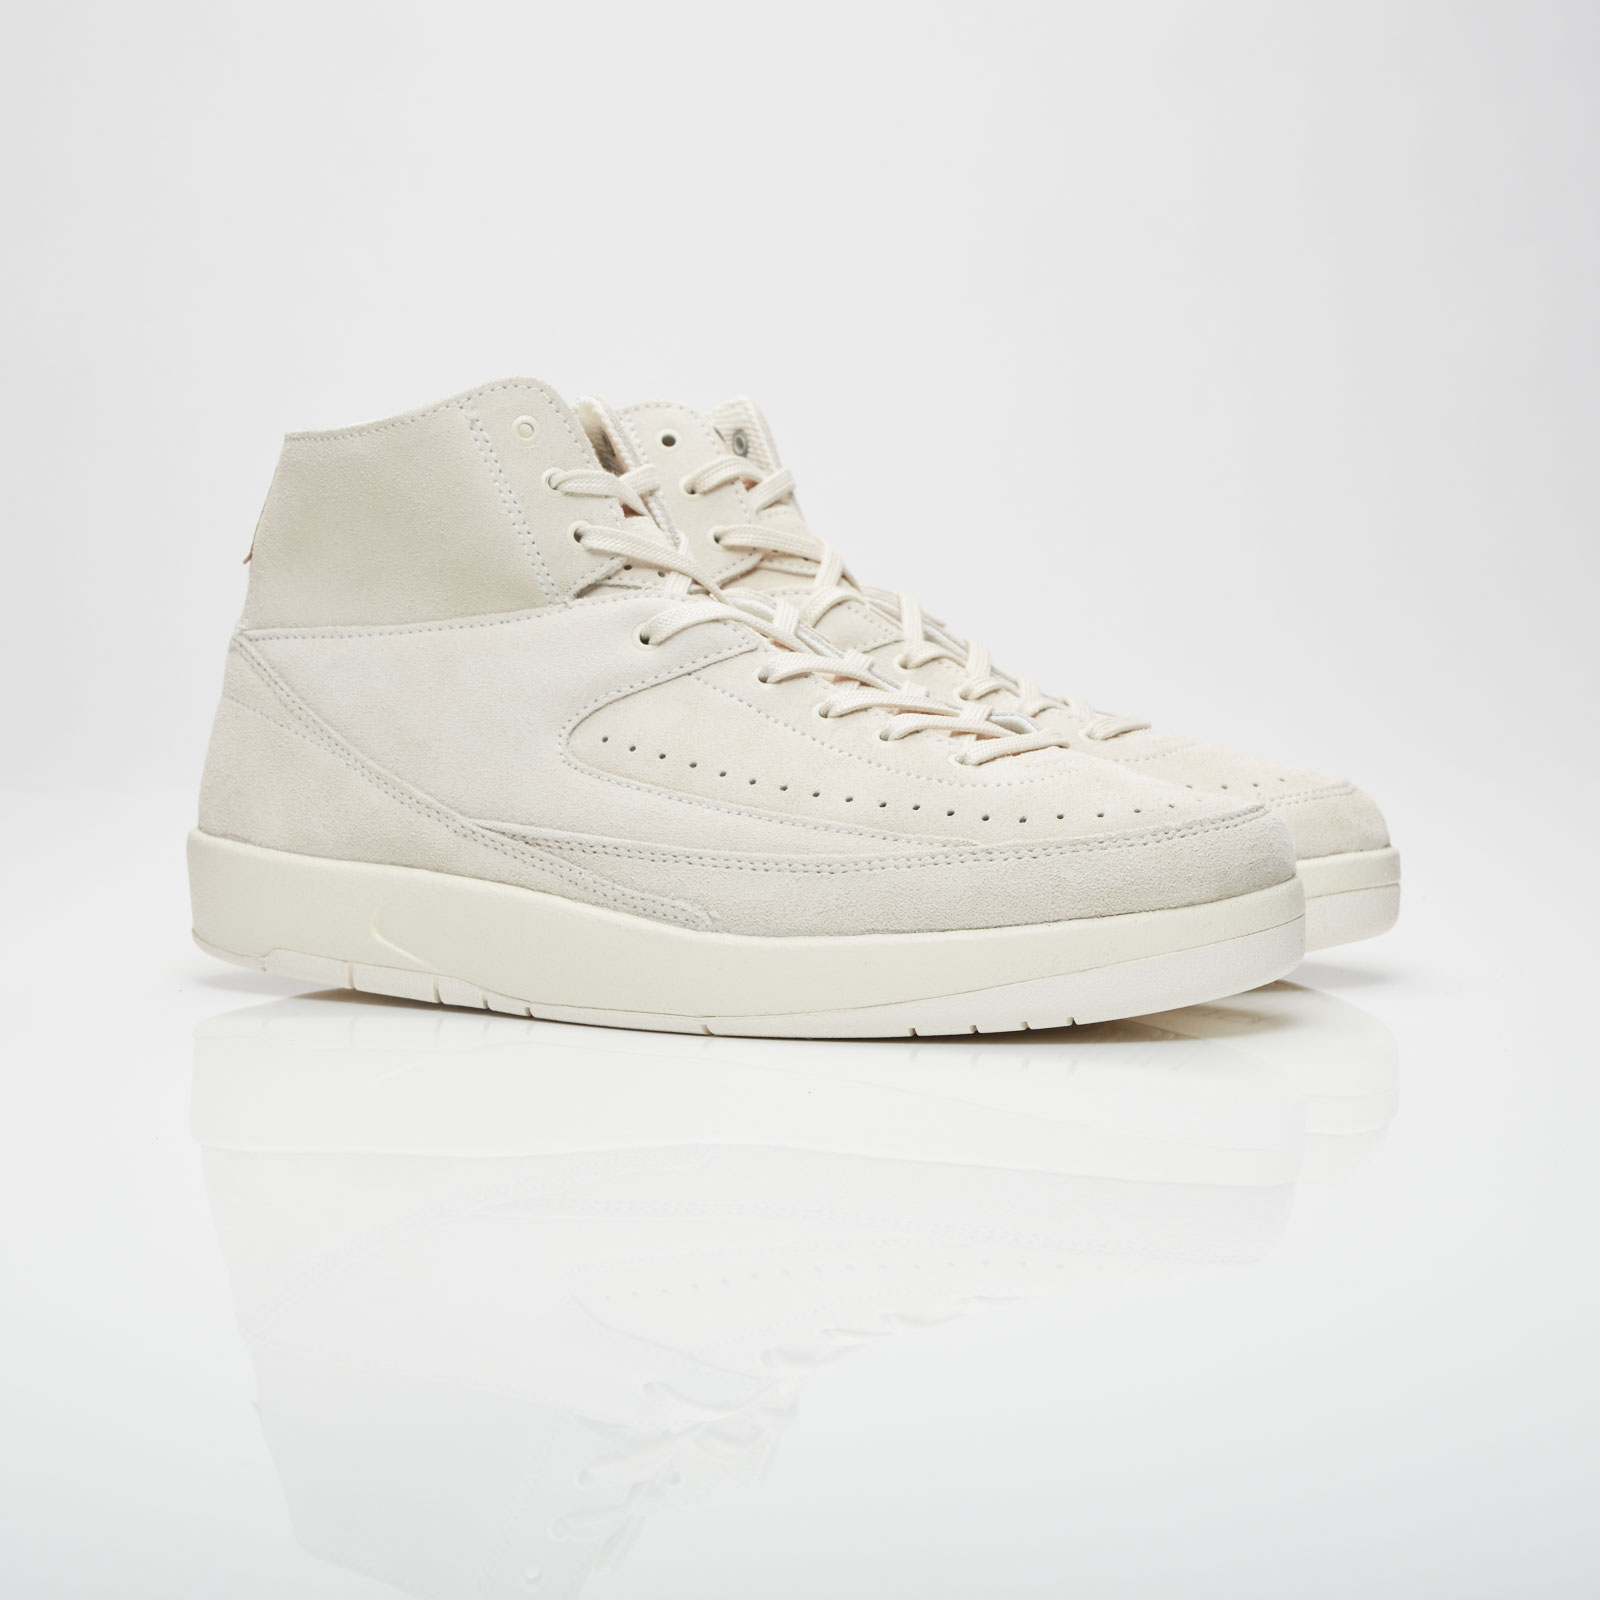 6bc6f89c138e02 Jordan Brand Air Jordan 2 Retro Decon - 897521-100 - Sneakersnstuff ...